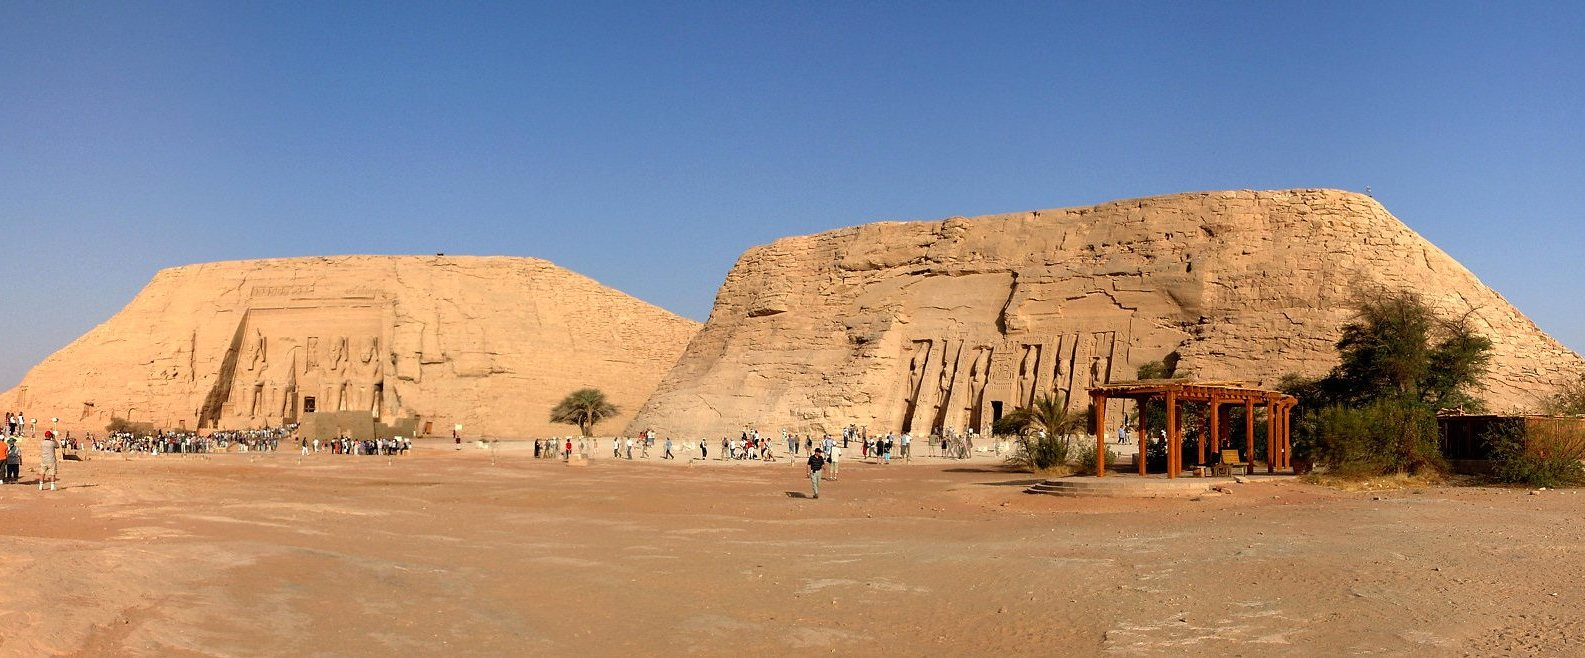 Abu Simbel - Great Temple of Ramesses II (left) and Small Temple of Nefertari (right)